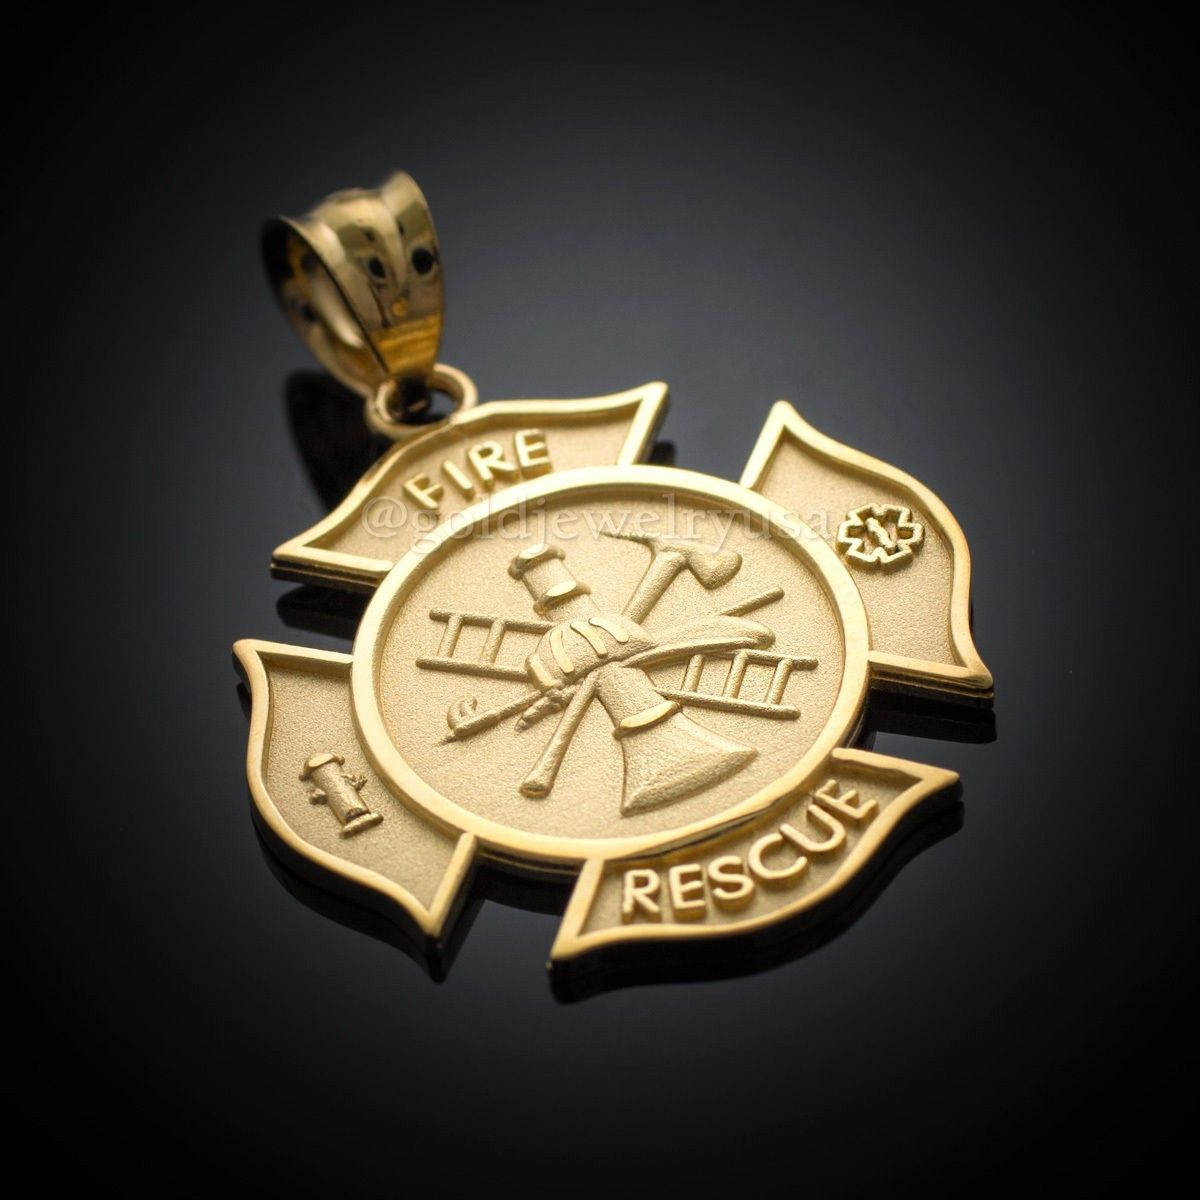 Solid gold firefighter fire rescue maltese and 50 similar items s l1600 s l1600 solid gold firefighter fire rescue maltese cross pendant aloadofball Gallery